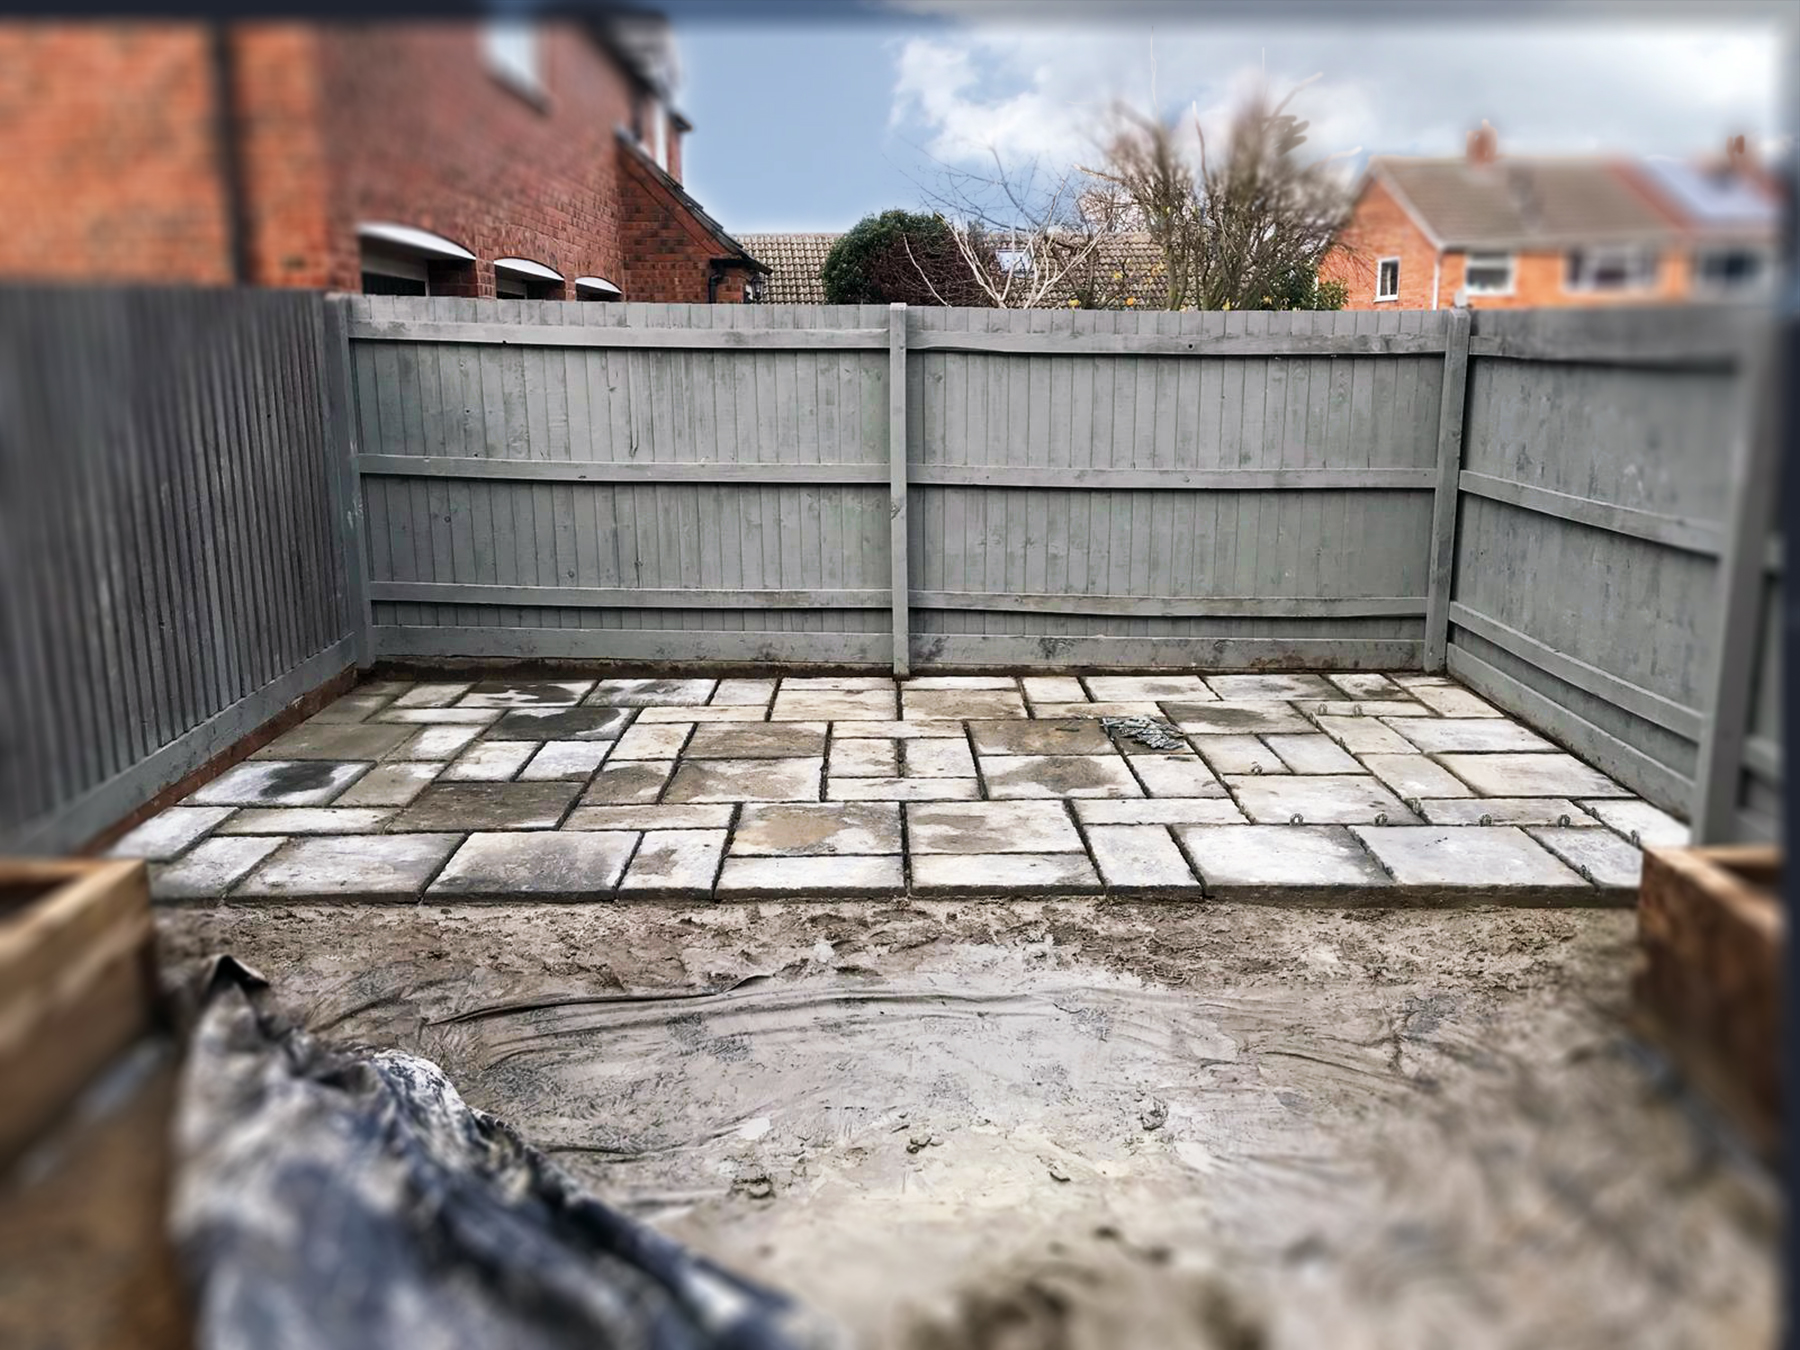 Landscaping - Paving works